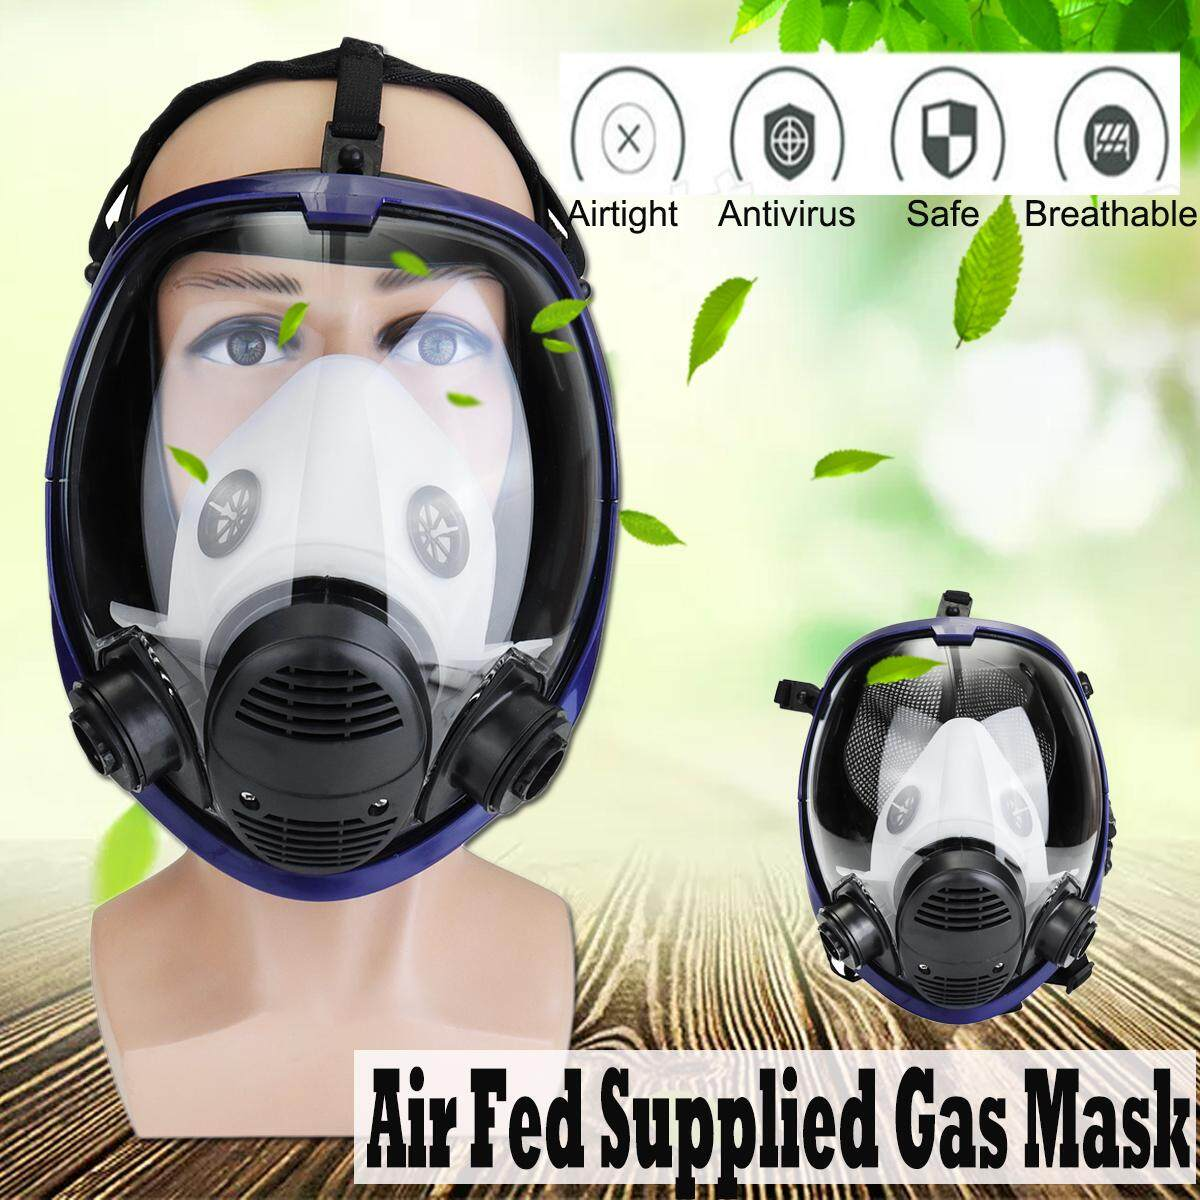 【Free Shipping + Flash Deal】Air Fed Supplied Gas Mask System Full Face Airline Respirator For Spraying Weld Anti-Fog PM2.5